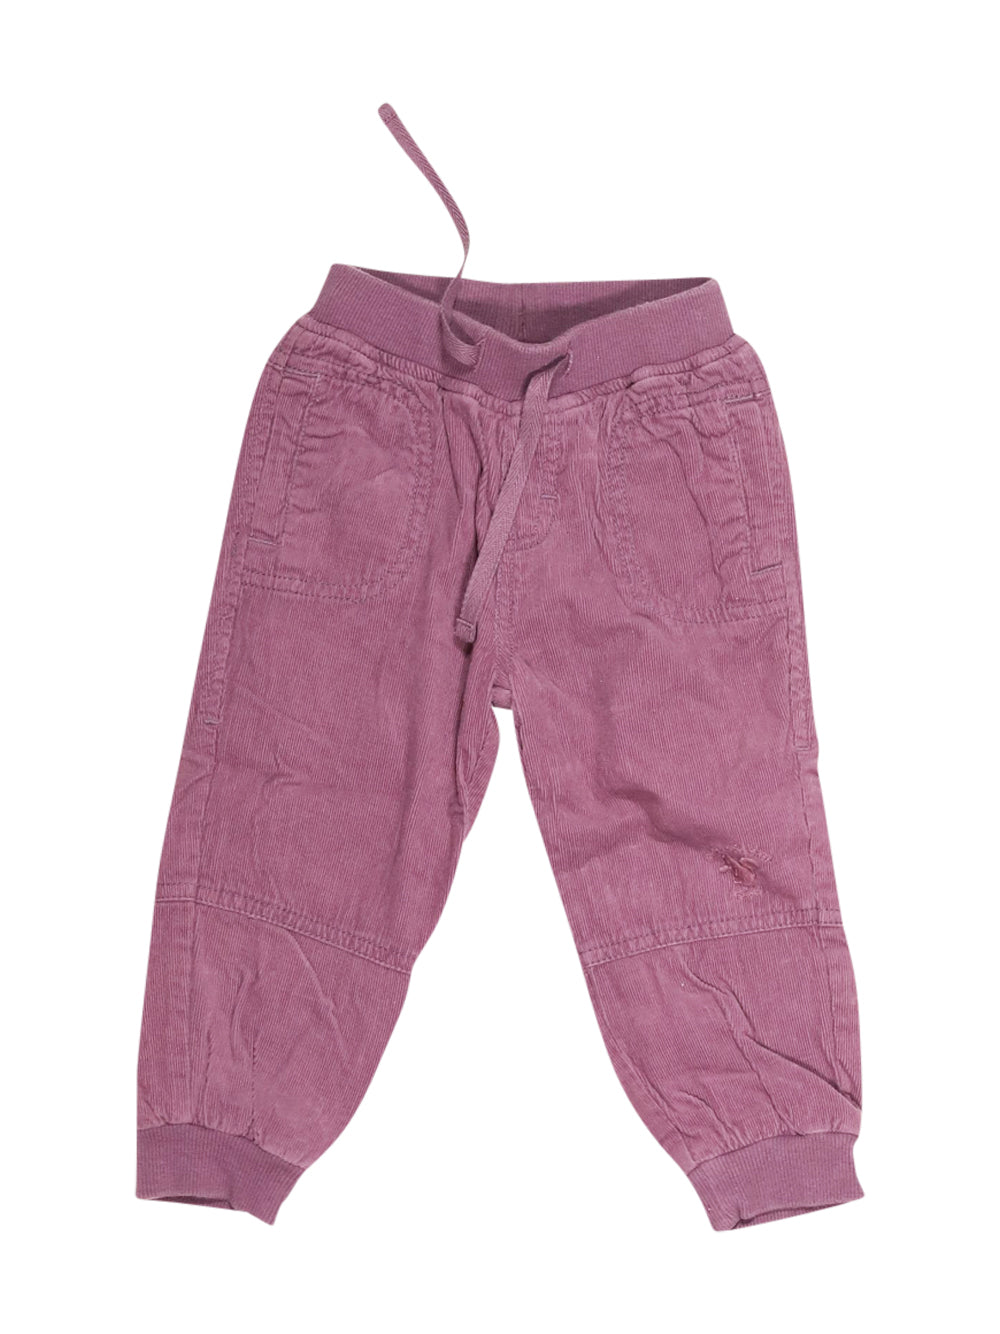 Front photo of Preloved Chicco Violet Girl's trousers - size 12-18 mths